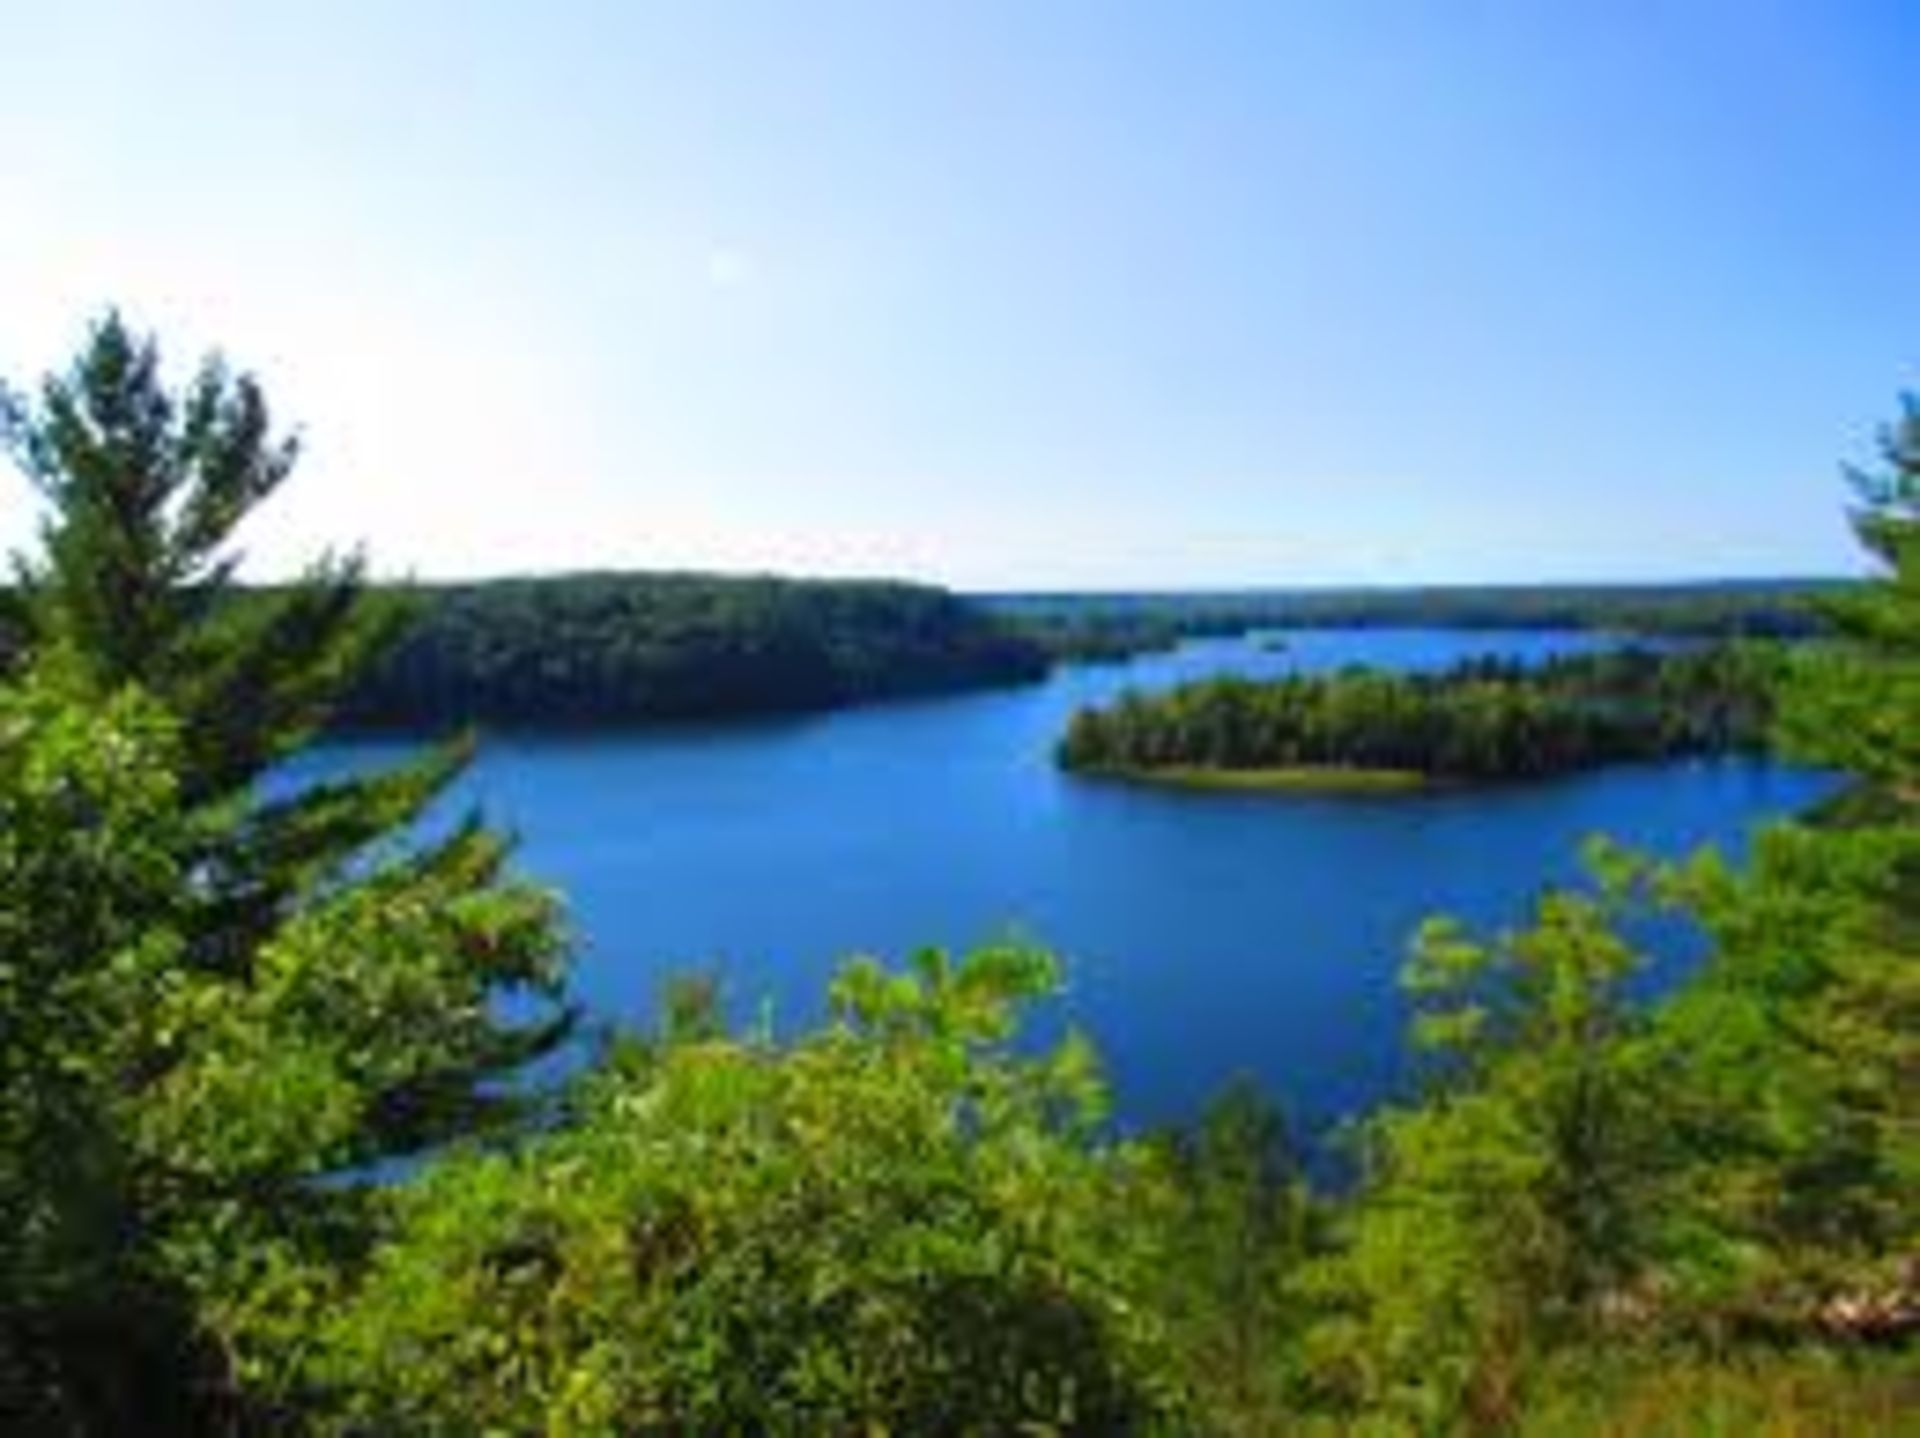 Own Land in Lake County. Michigan's Recreational Outdoor Paradise!